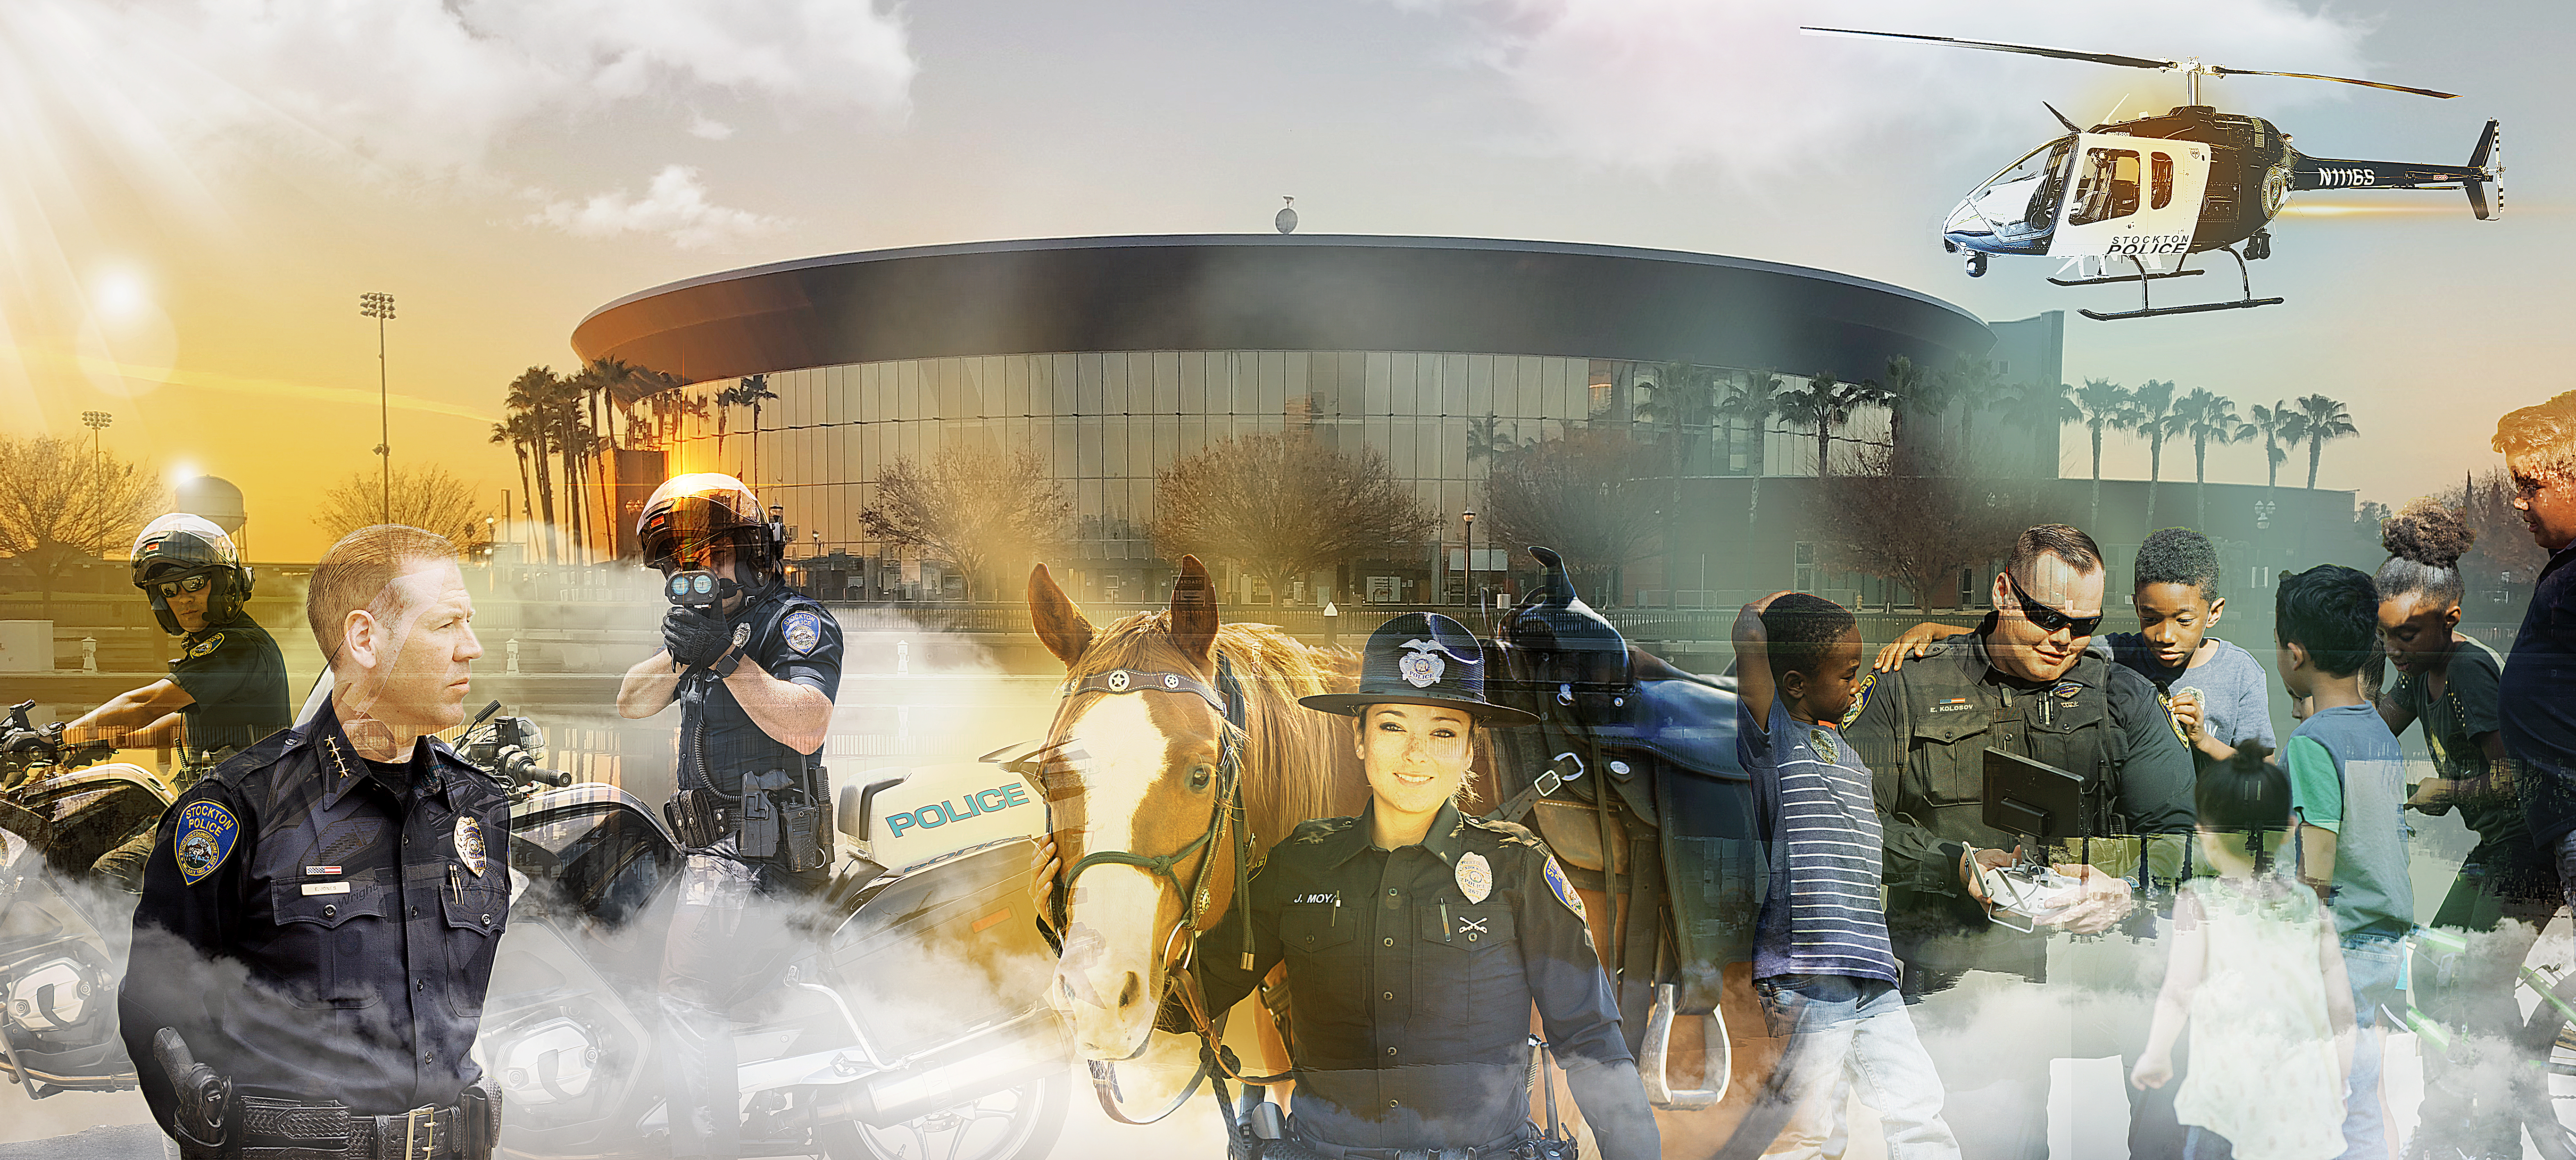 Stockton Police Chief Eric Jones poses with police personnel in front of the Stockton Arena